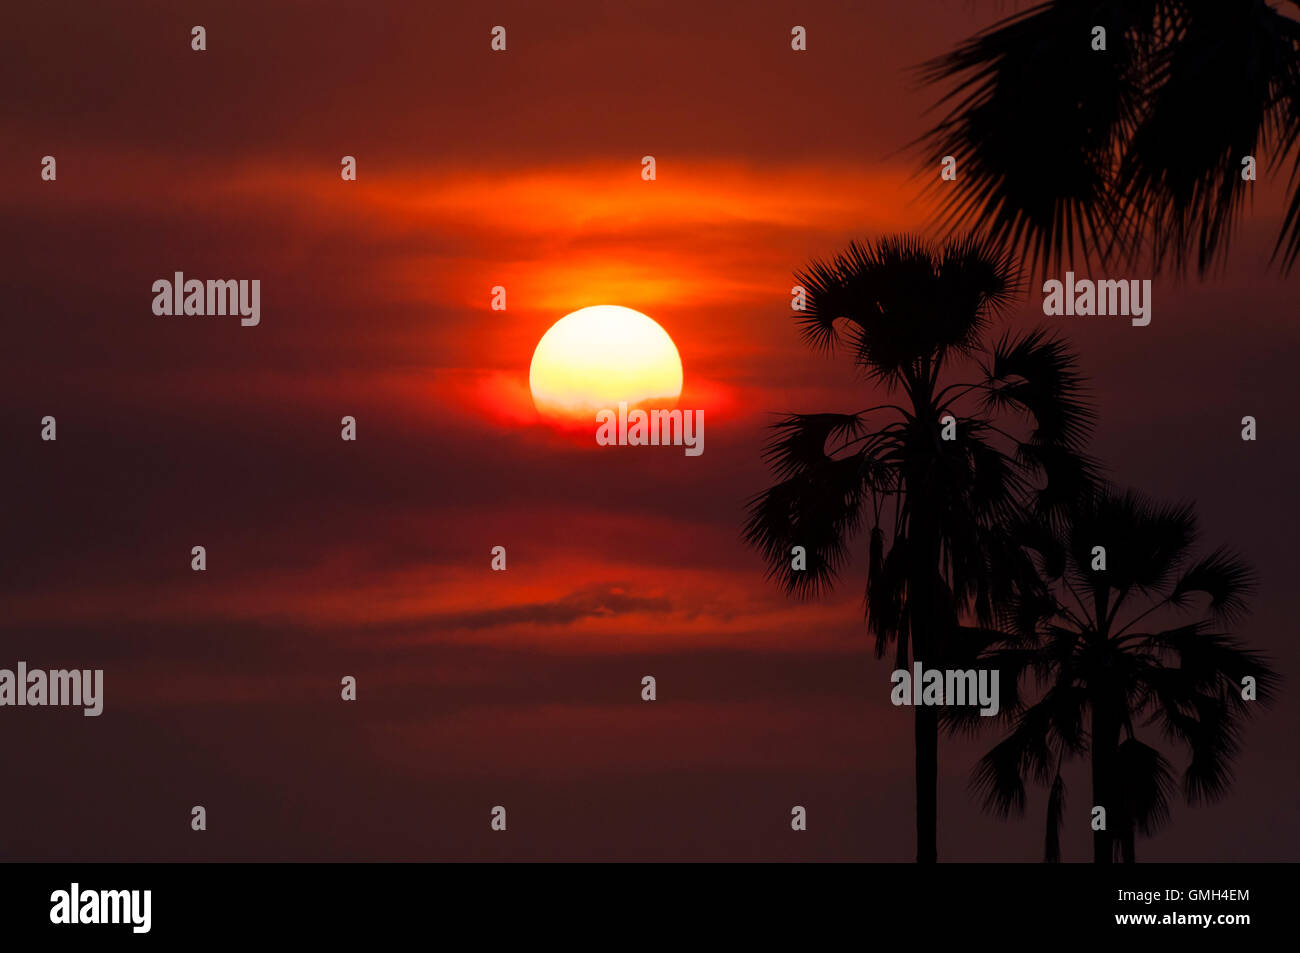 Silhouette of palm trees in the Okavango Delta, in Botswana; Concept for travel safari and travel in Africa Stock Photo